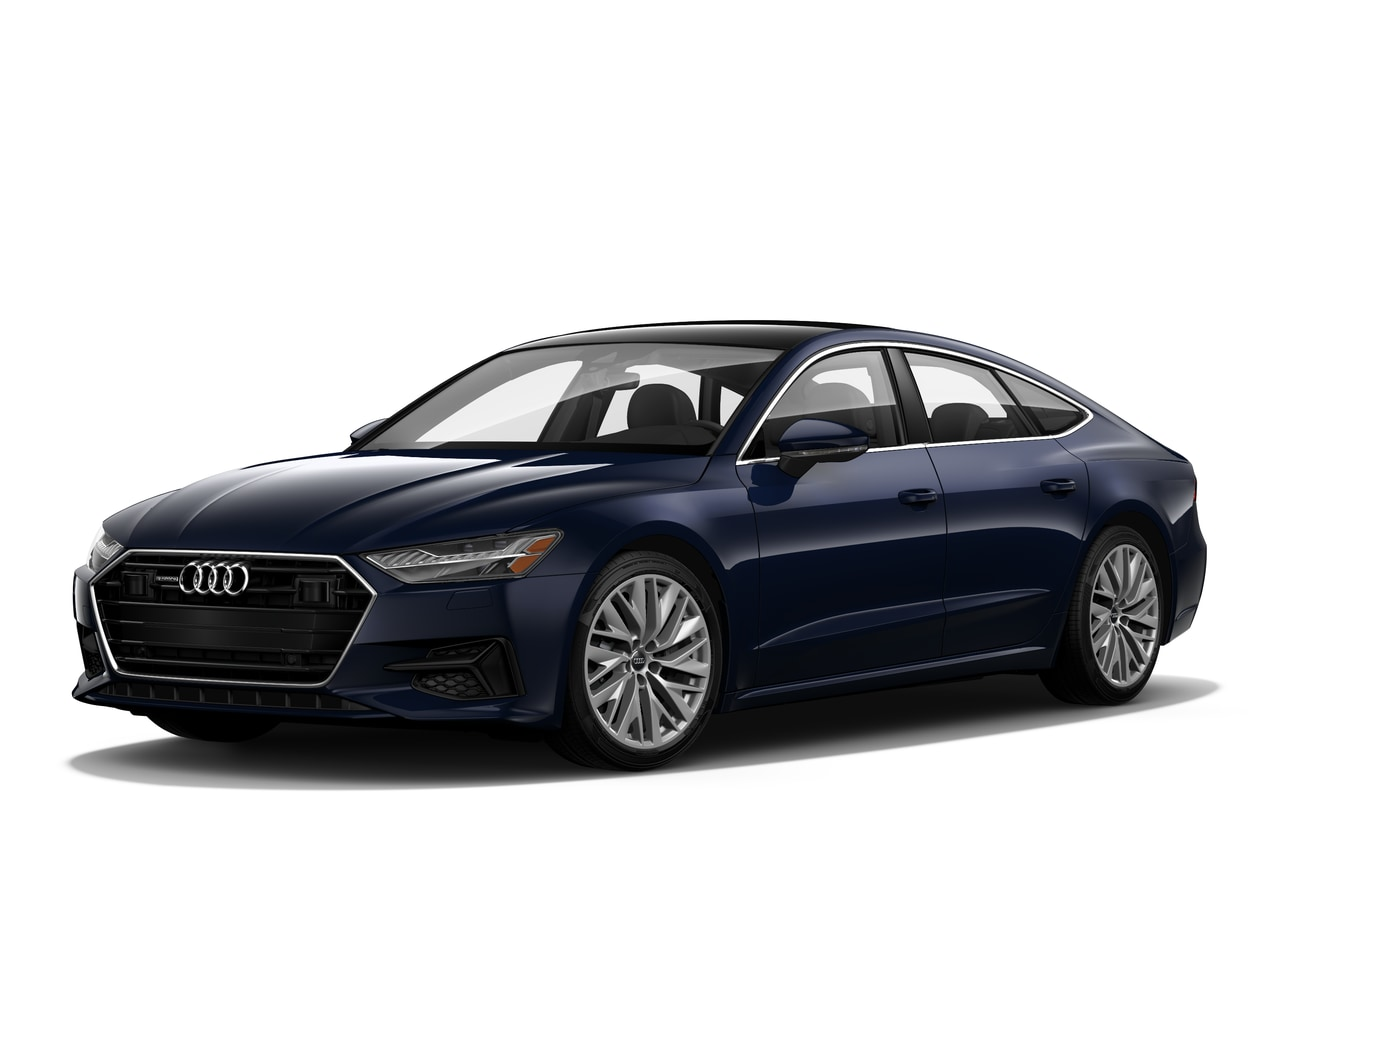 New Audi A7 In Southampton Ny Inventory Photos Videos Features